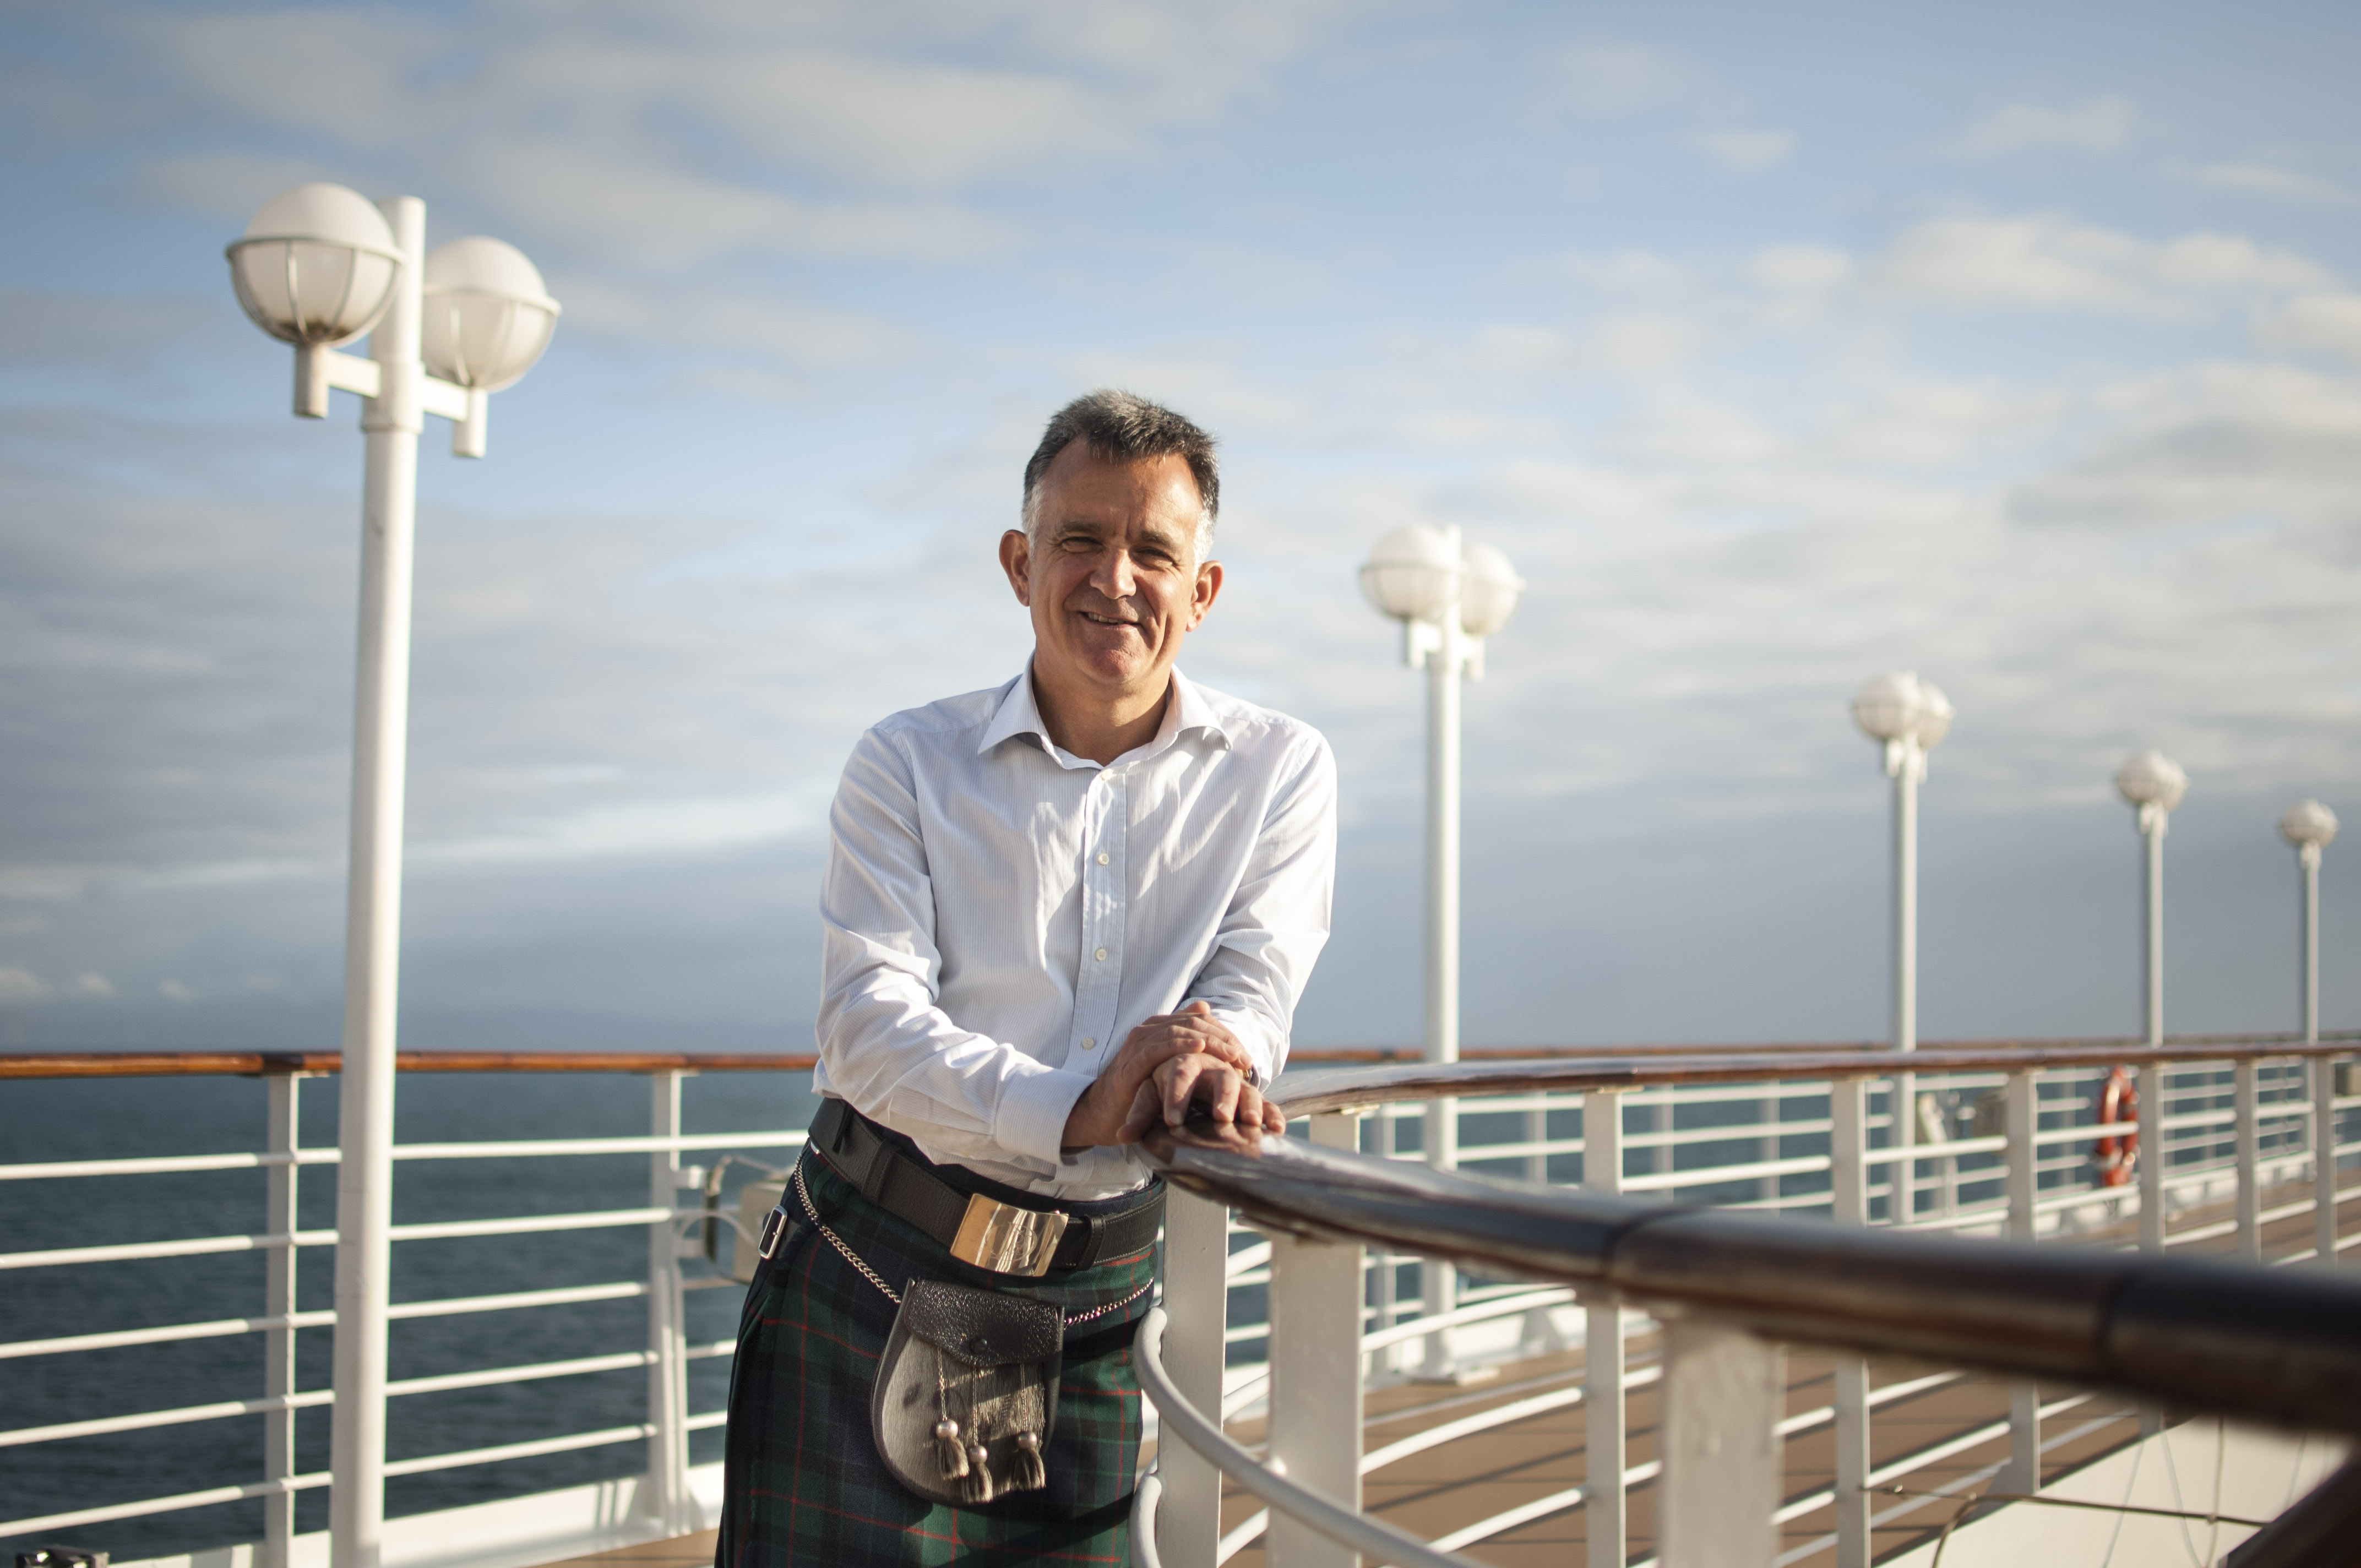 PerryGolf's Co-Founding Director, Colin Dalgleish, poses for photo on board Azamara Quest in his kilt during a PerryGolf Cruise